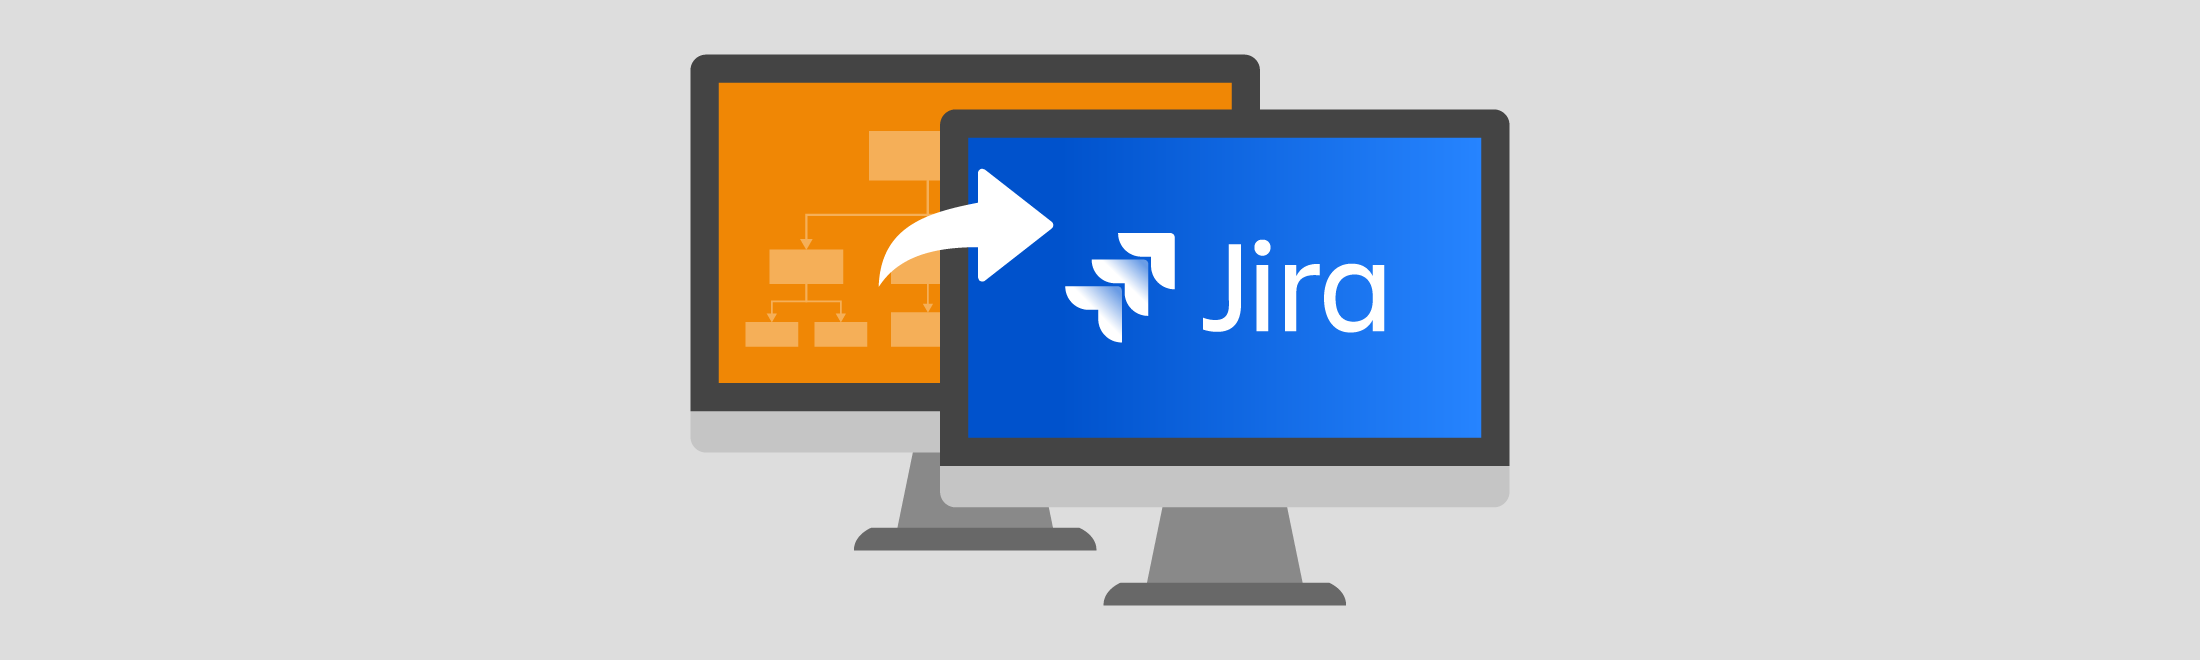 You can attach draw.io diagrams directly to the issues where they belong by using the draw.io app for Jira.